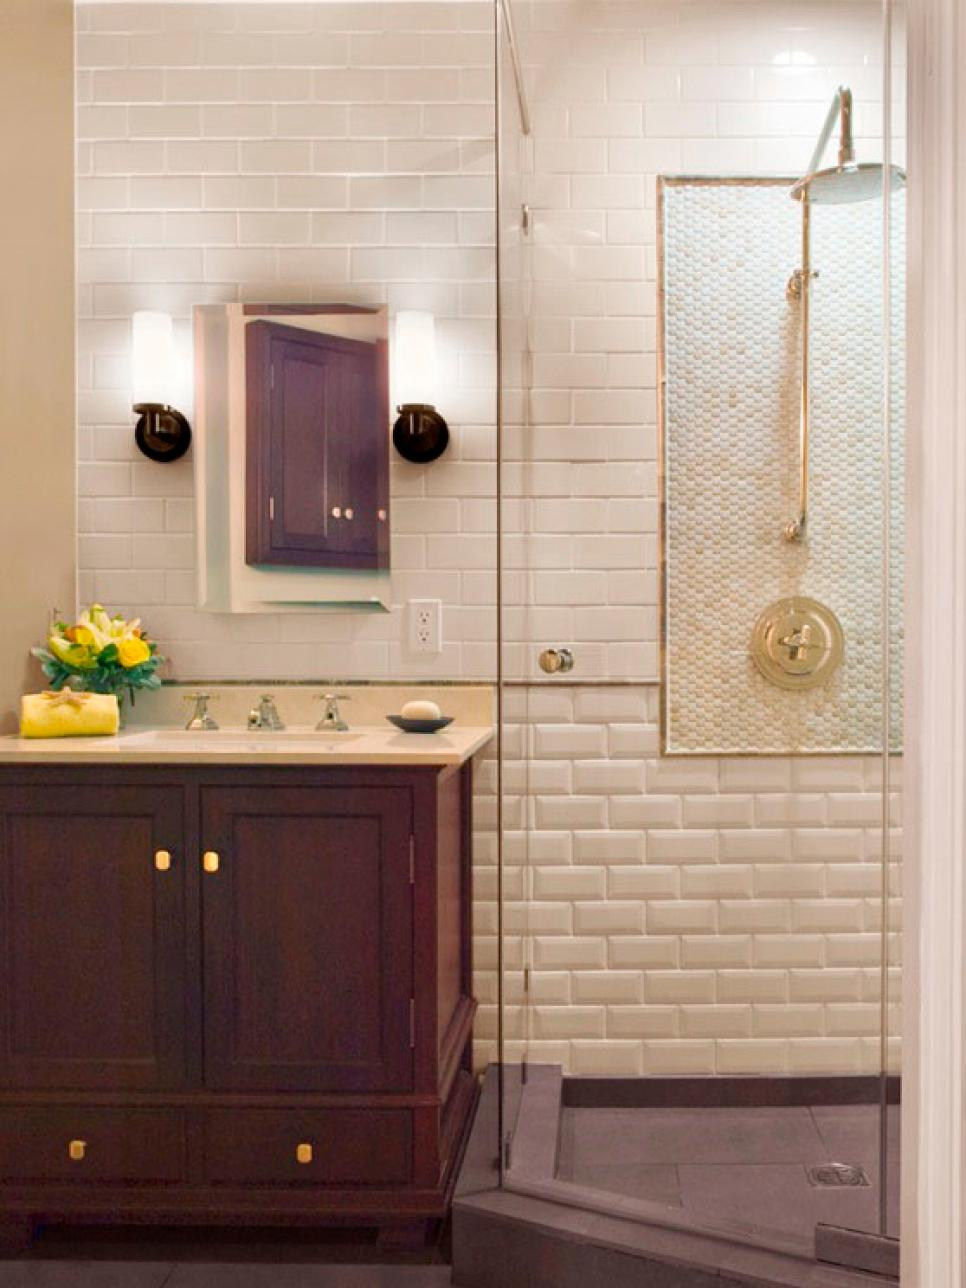 Bathroom Shower Designs HGTV - Small bathroom designs with shower for small bathroom ideas